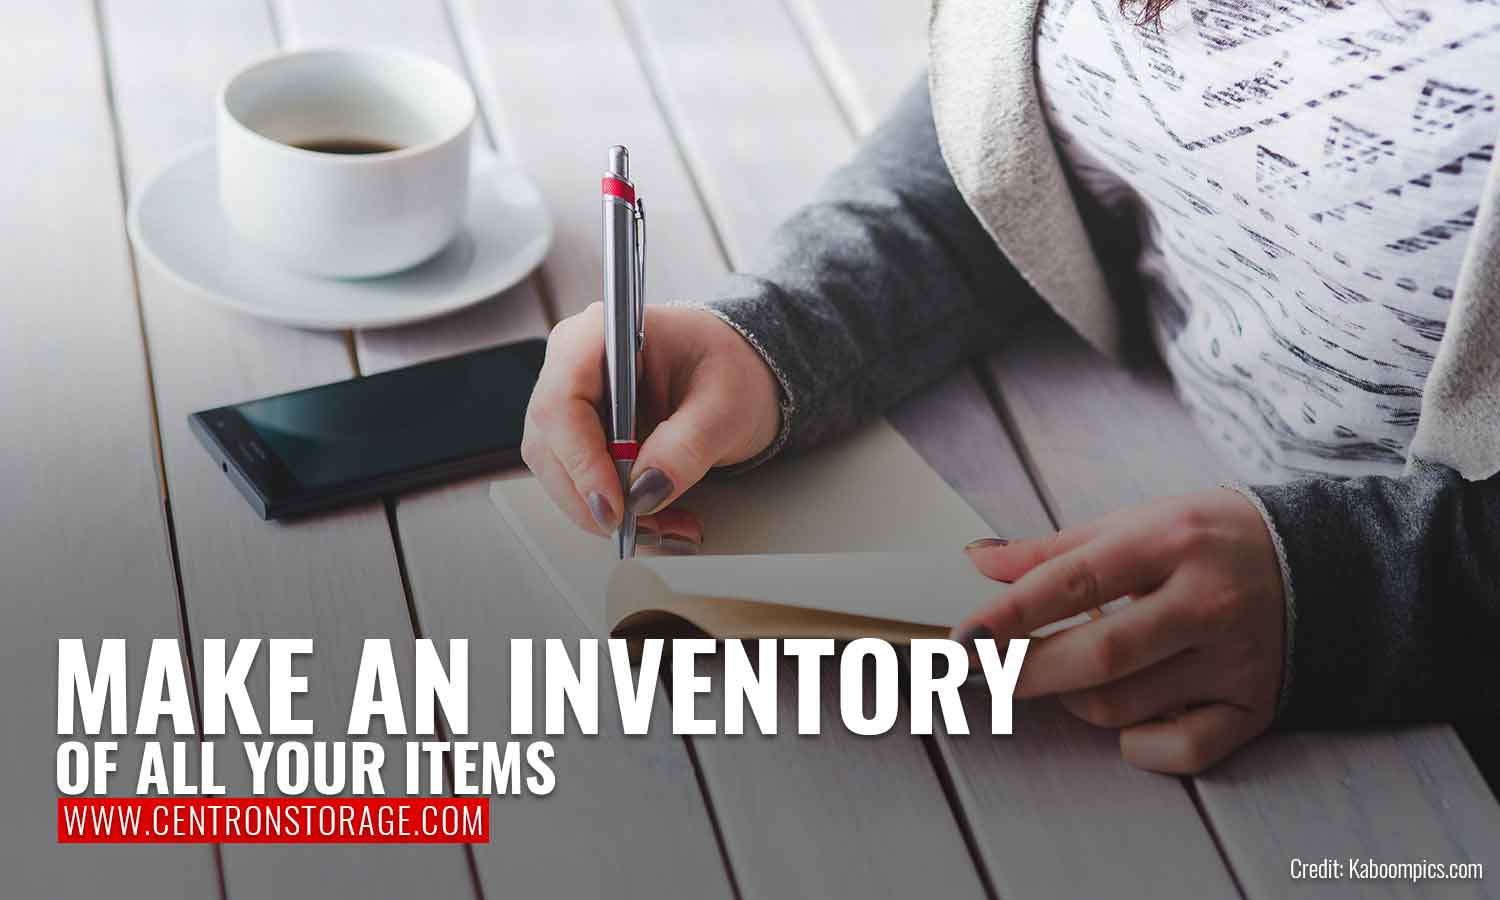 Make an inventory of all your items